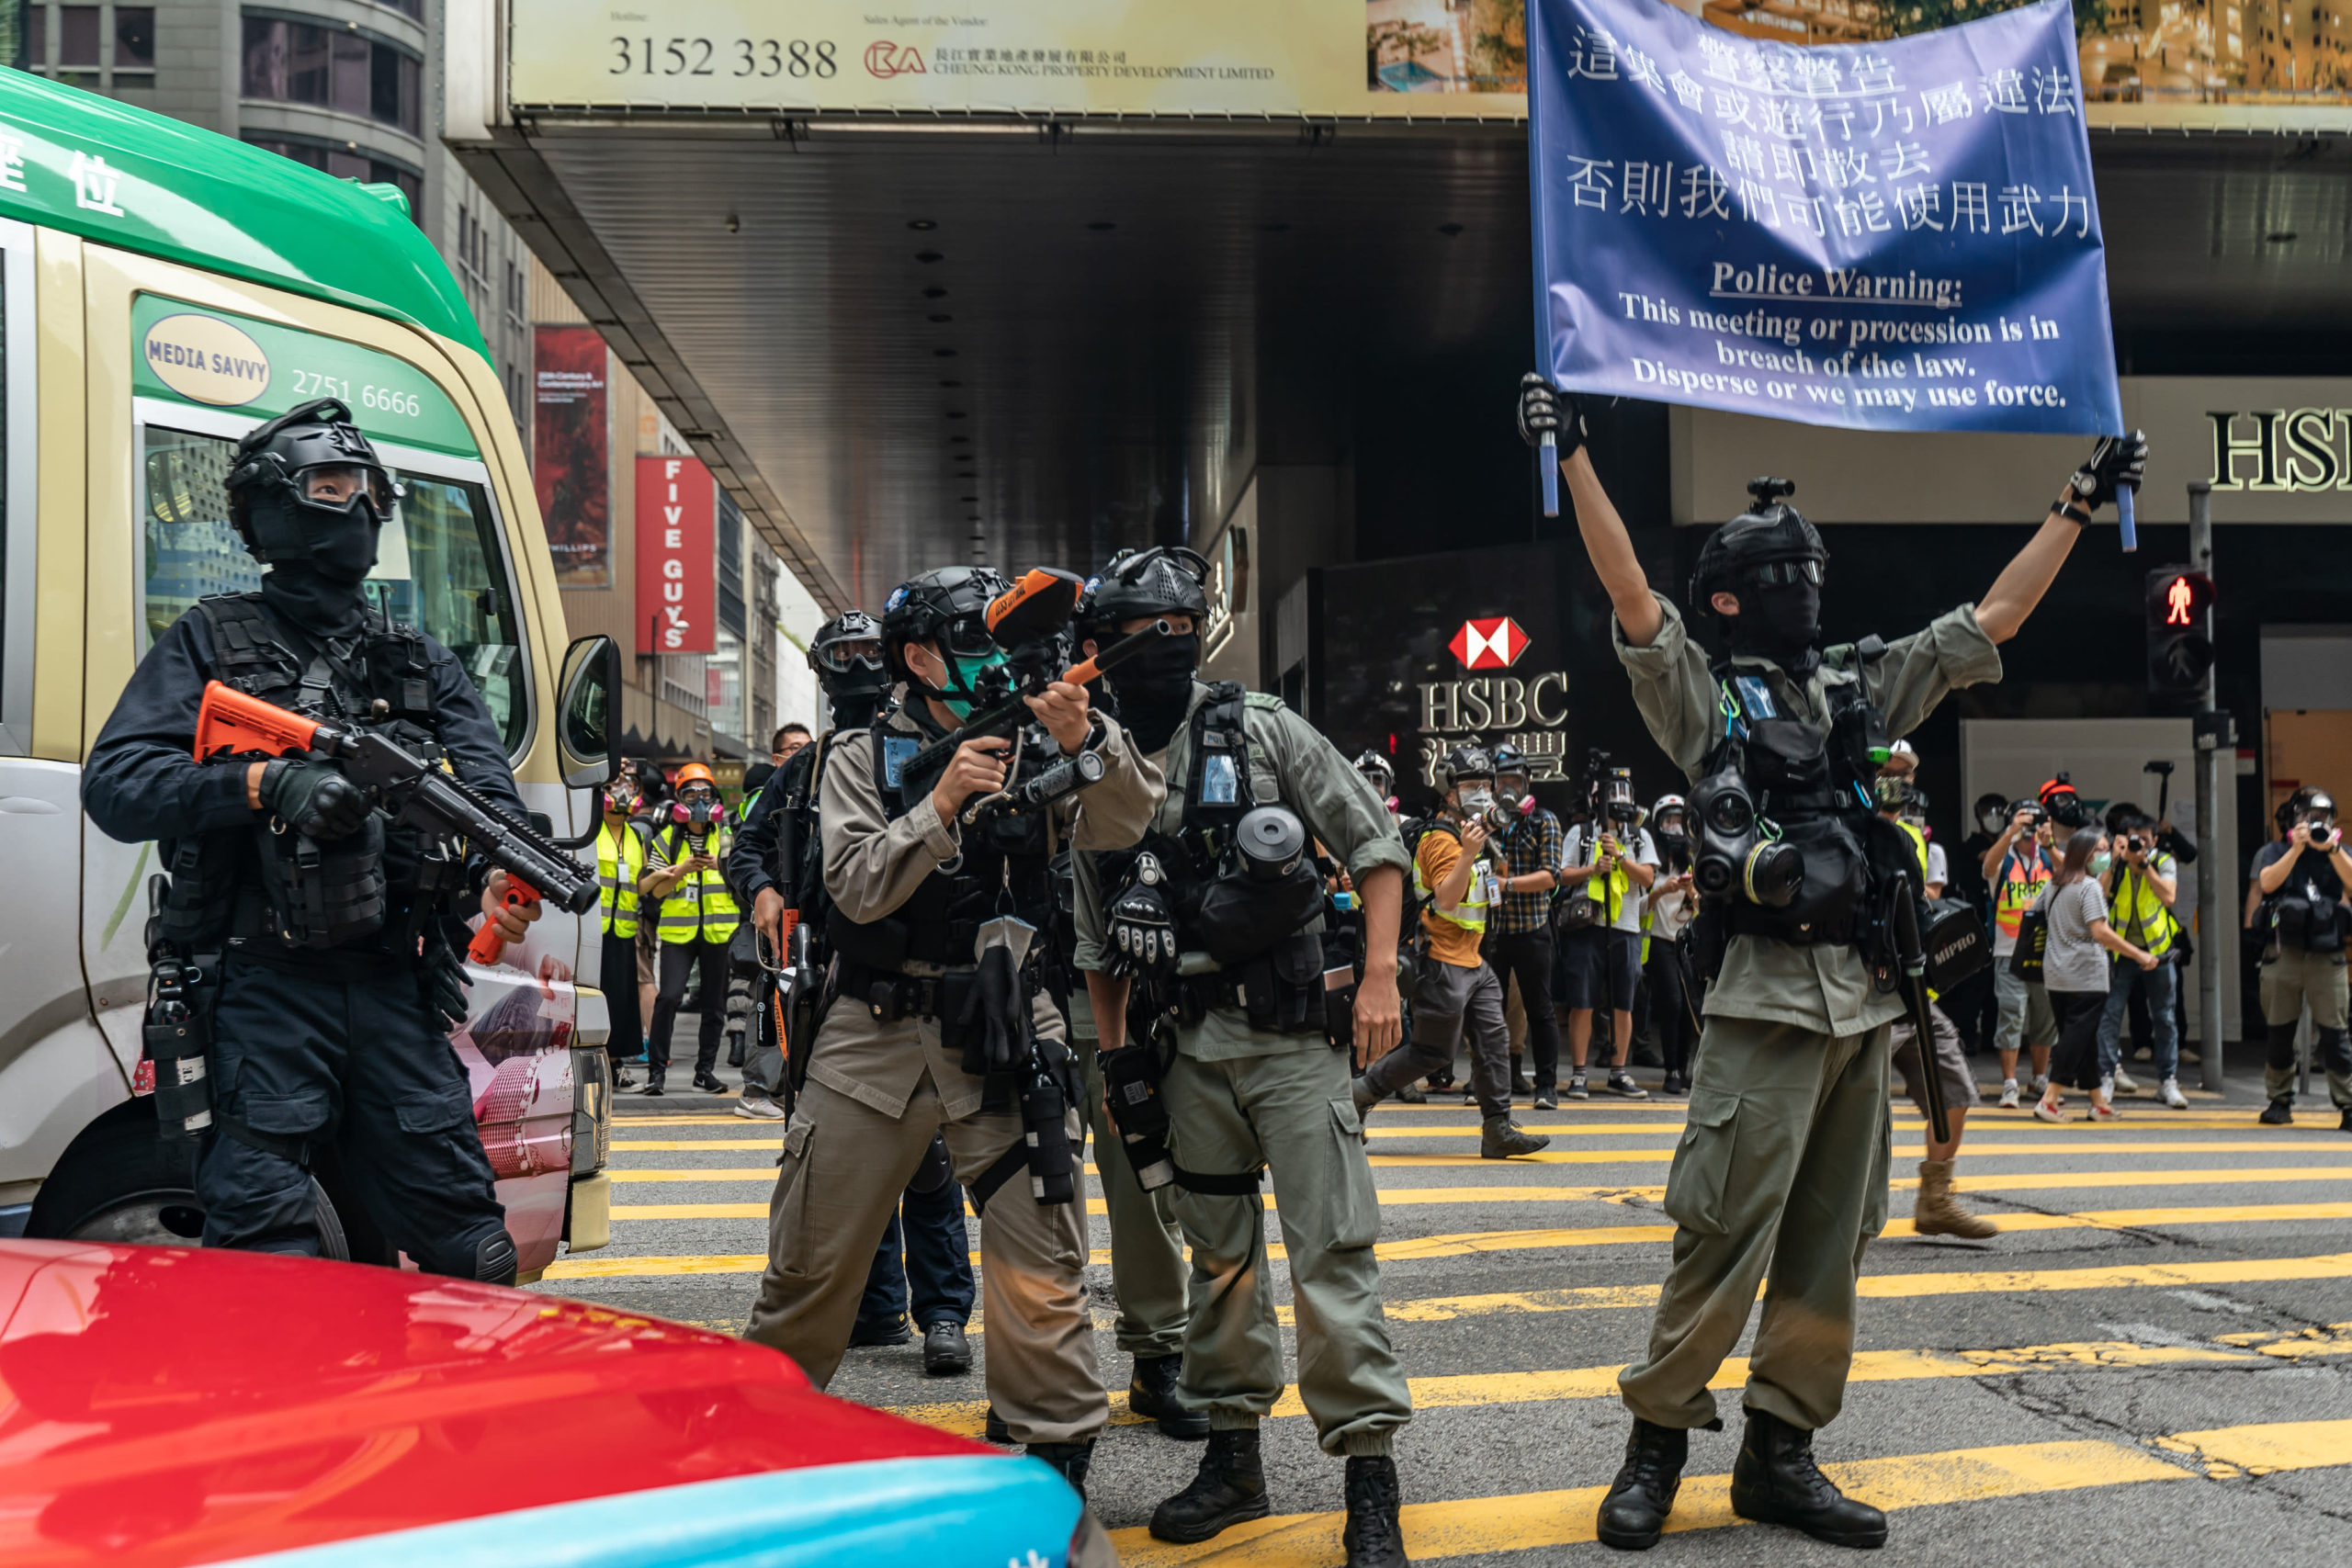 The Five Eyes has been in the vanguard of Hong Kong protests